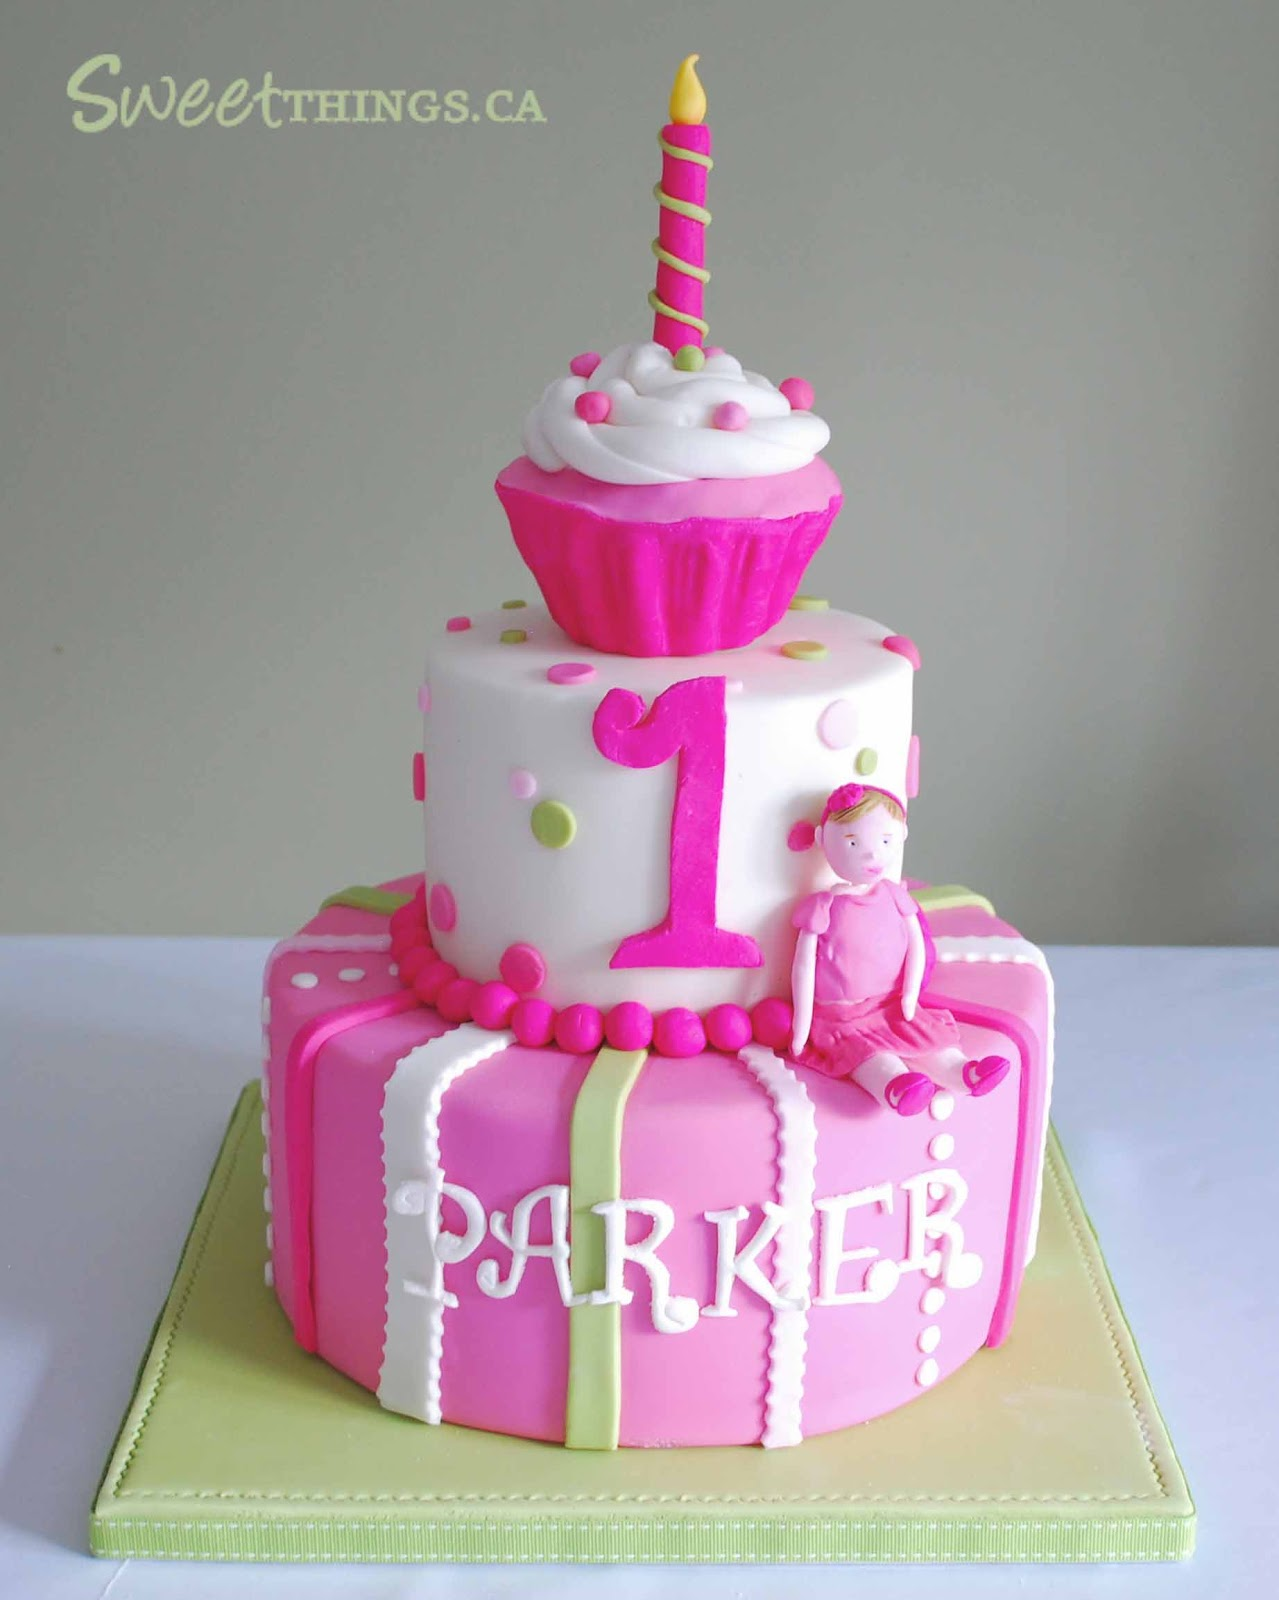 Cake Ideas For First Birthday Girl : SweetThings: Colorful 1st Birthday Cake